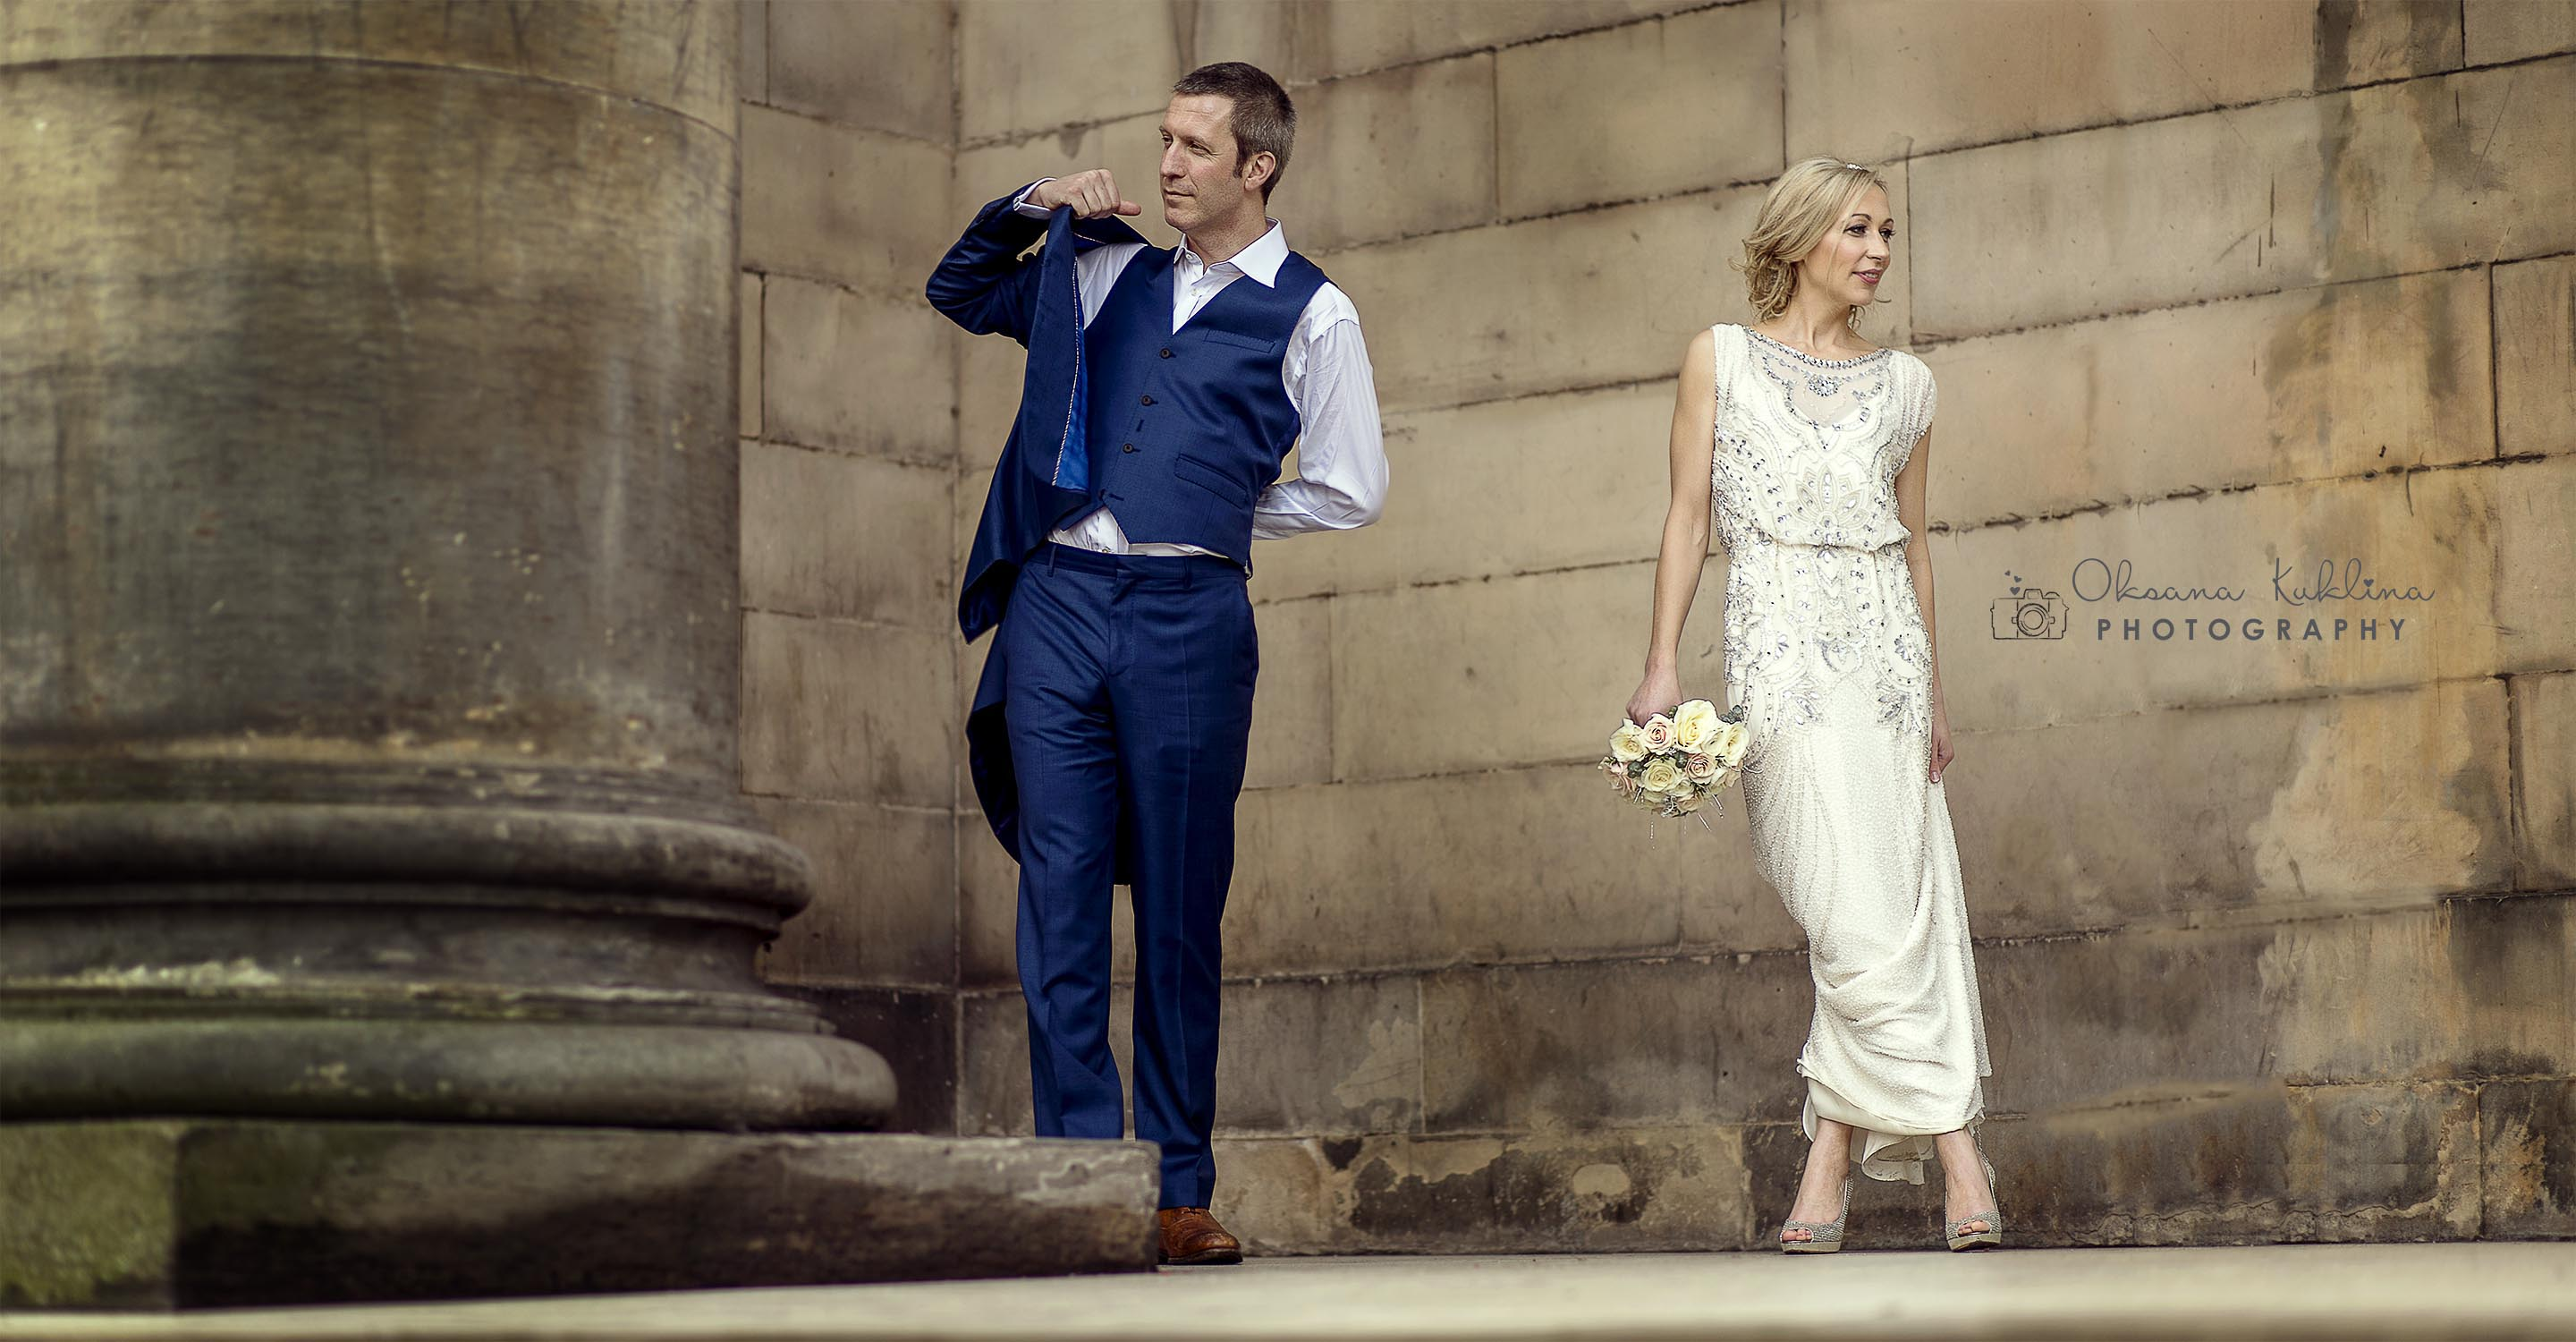 Best Edinburgh Wedding Photographer C Oksana Kuklina Photography